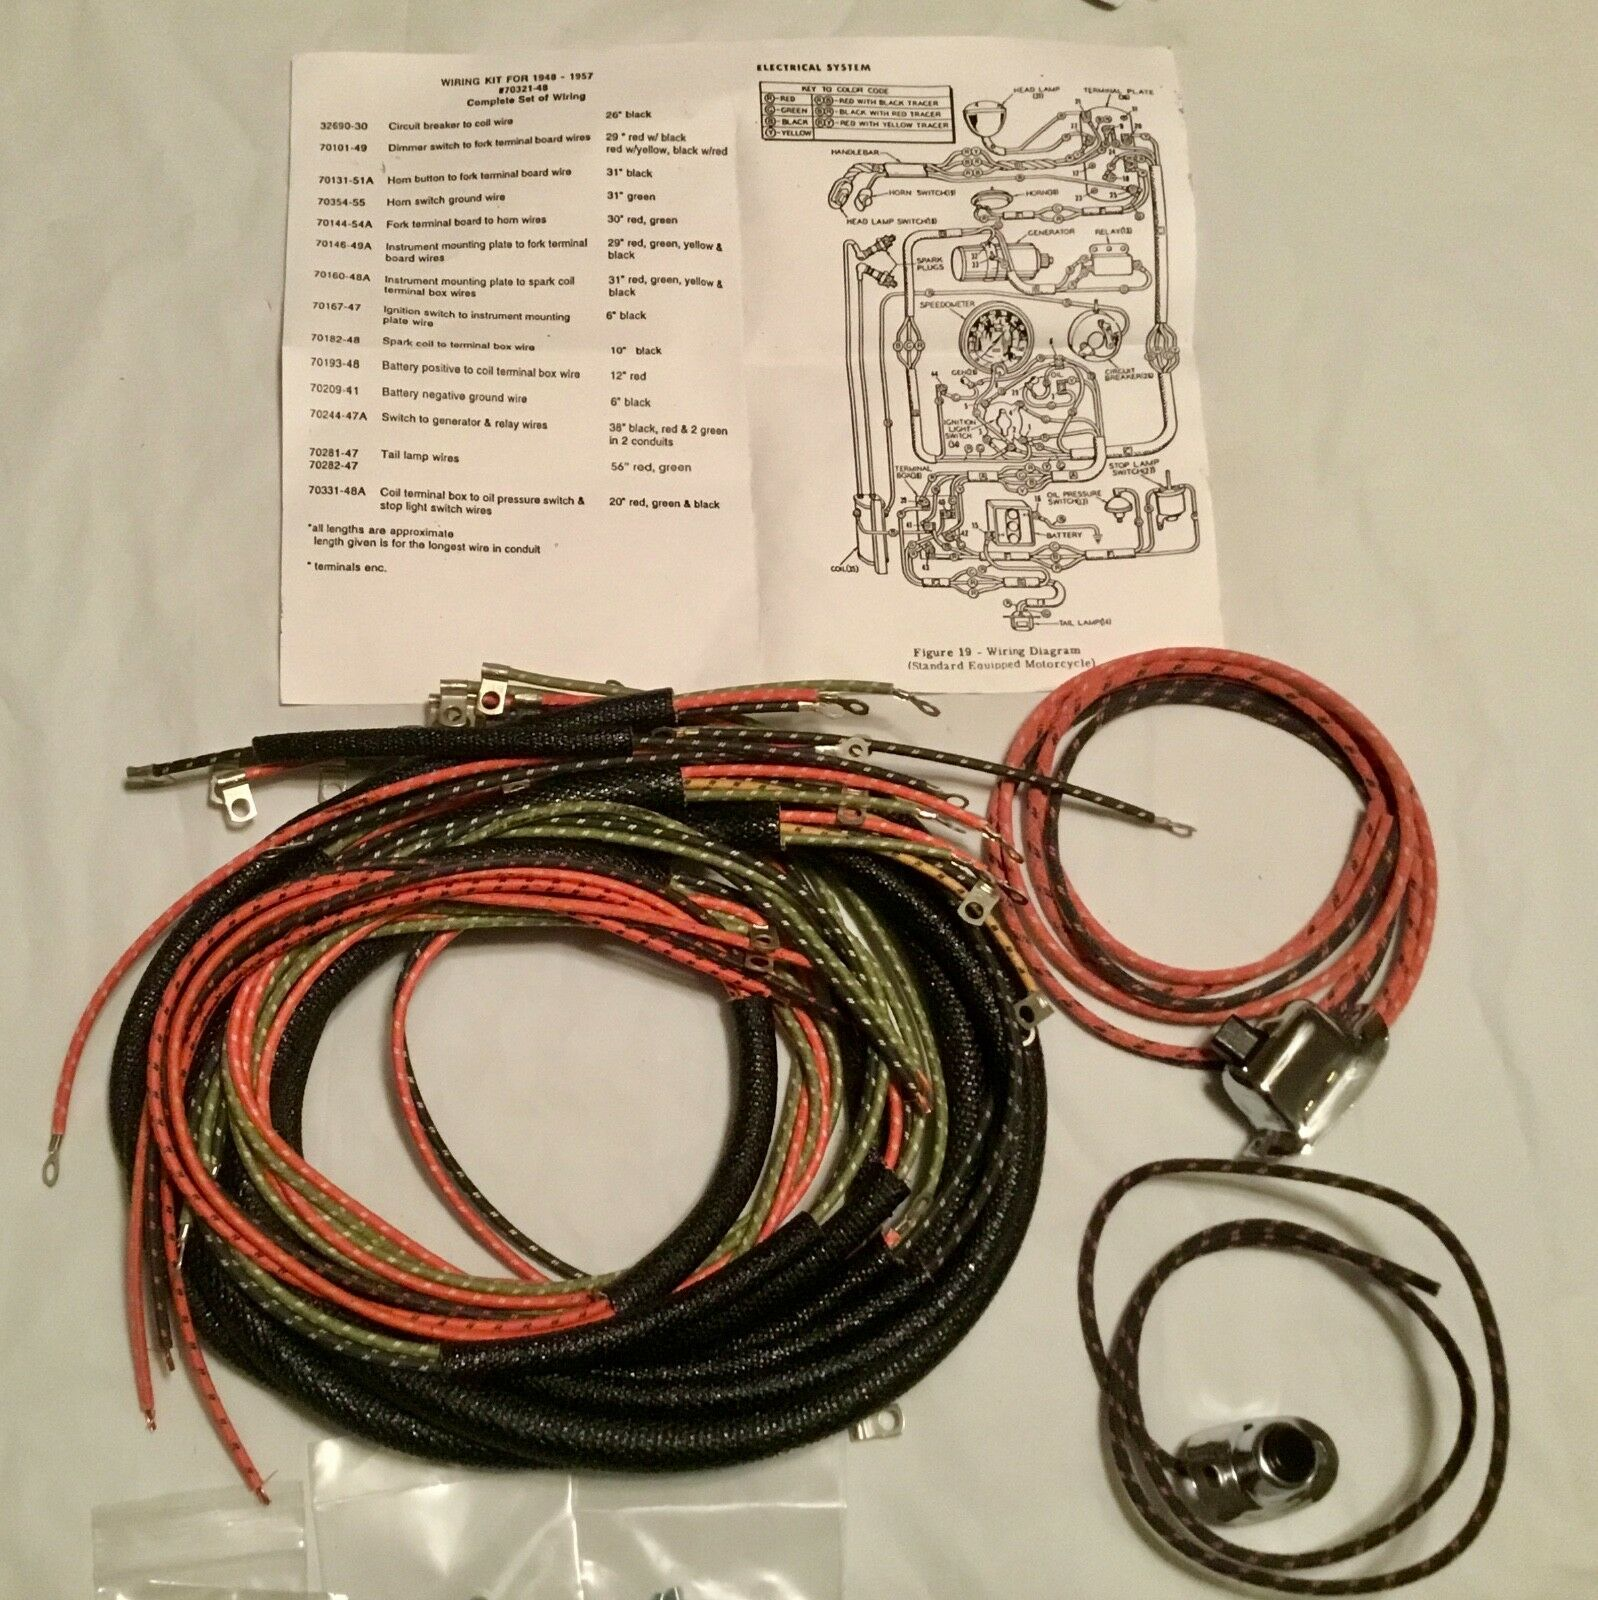 Harley 70321-48 Complete Panhead 1949-57 Wiring Harness W/ Wired Switches on